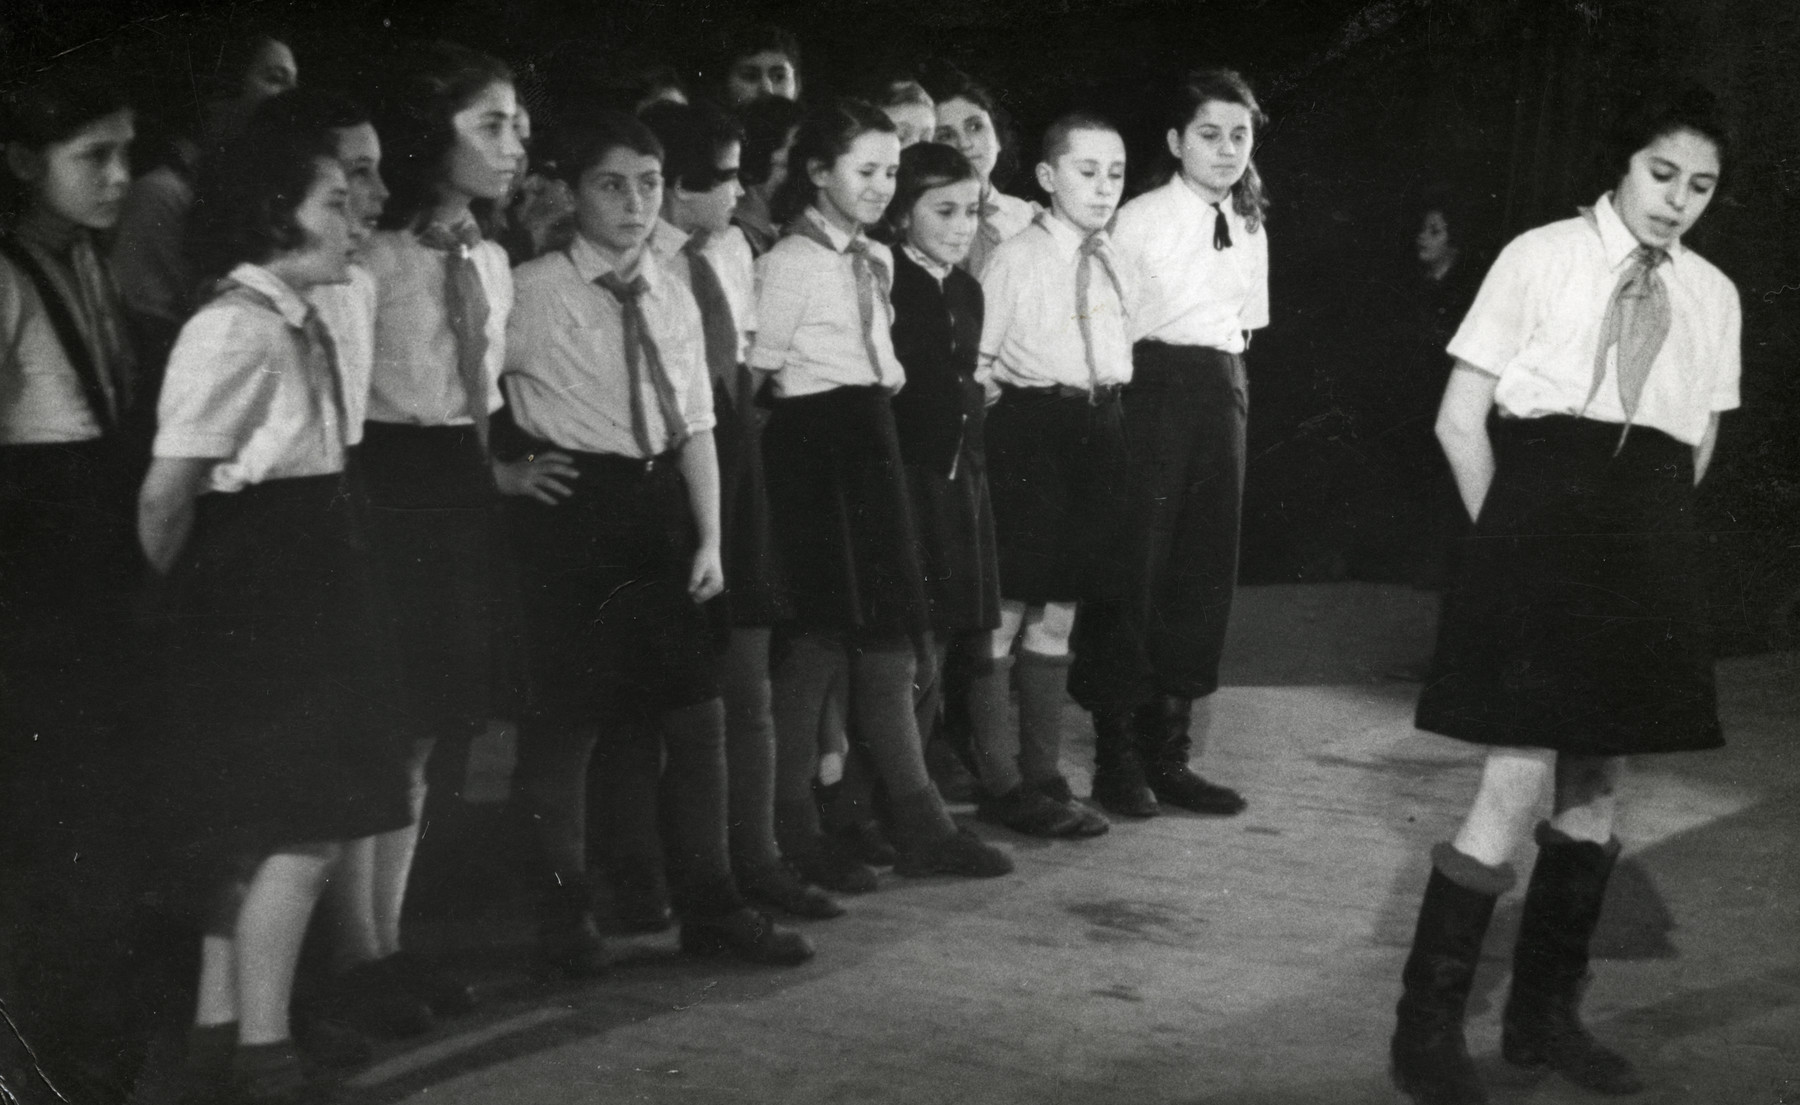 Group portrait of a postwar Jewish orphanage in Kaunas with Communist leanings.  Shalom Kaplan is pictured third from the right.